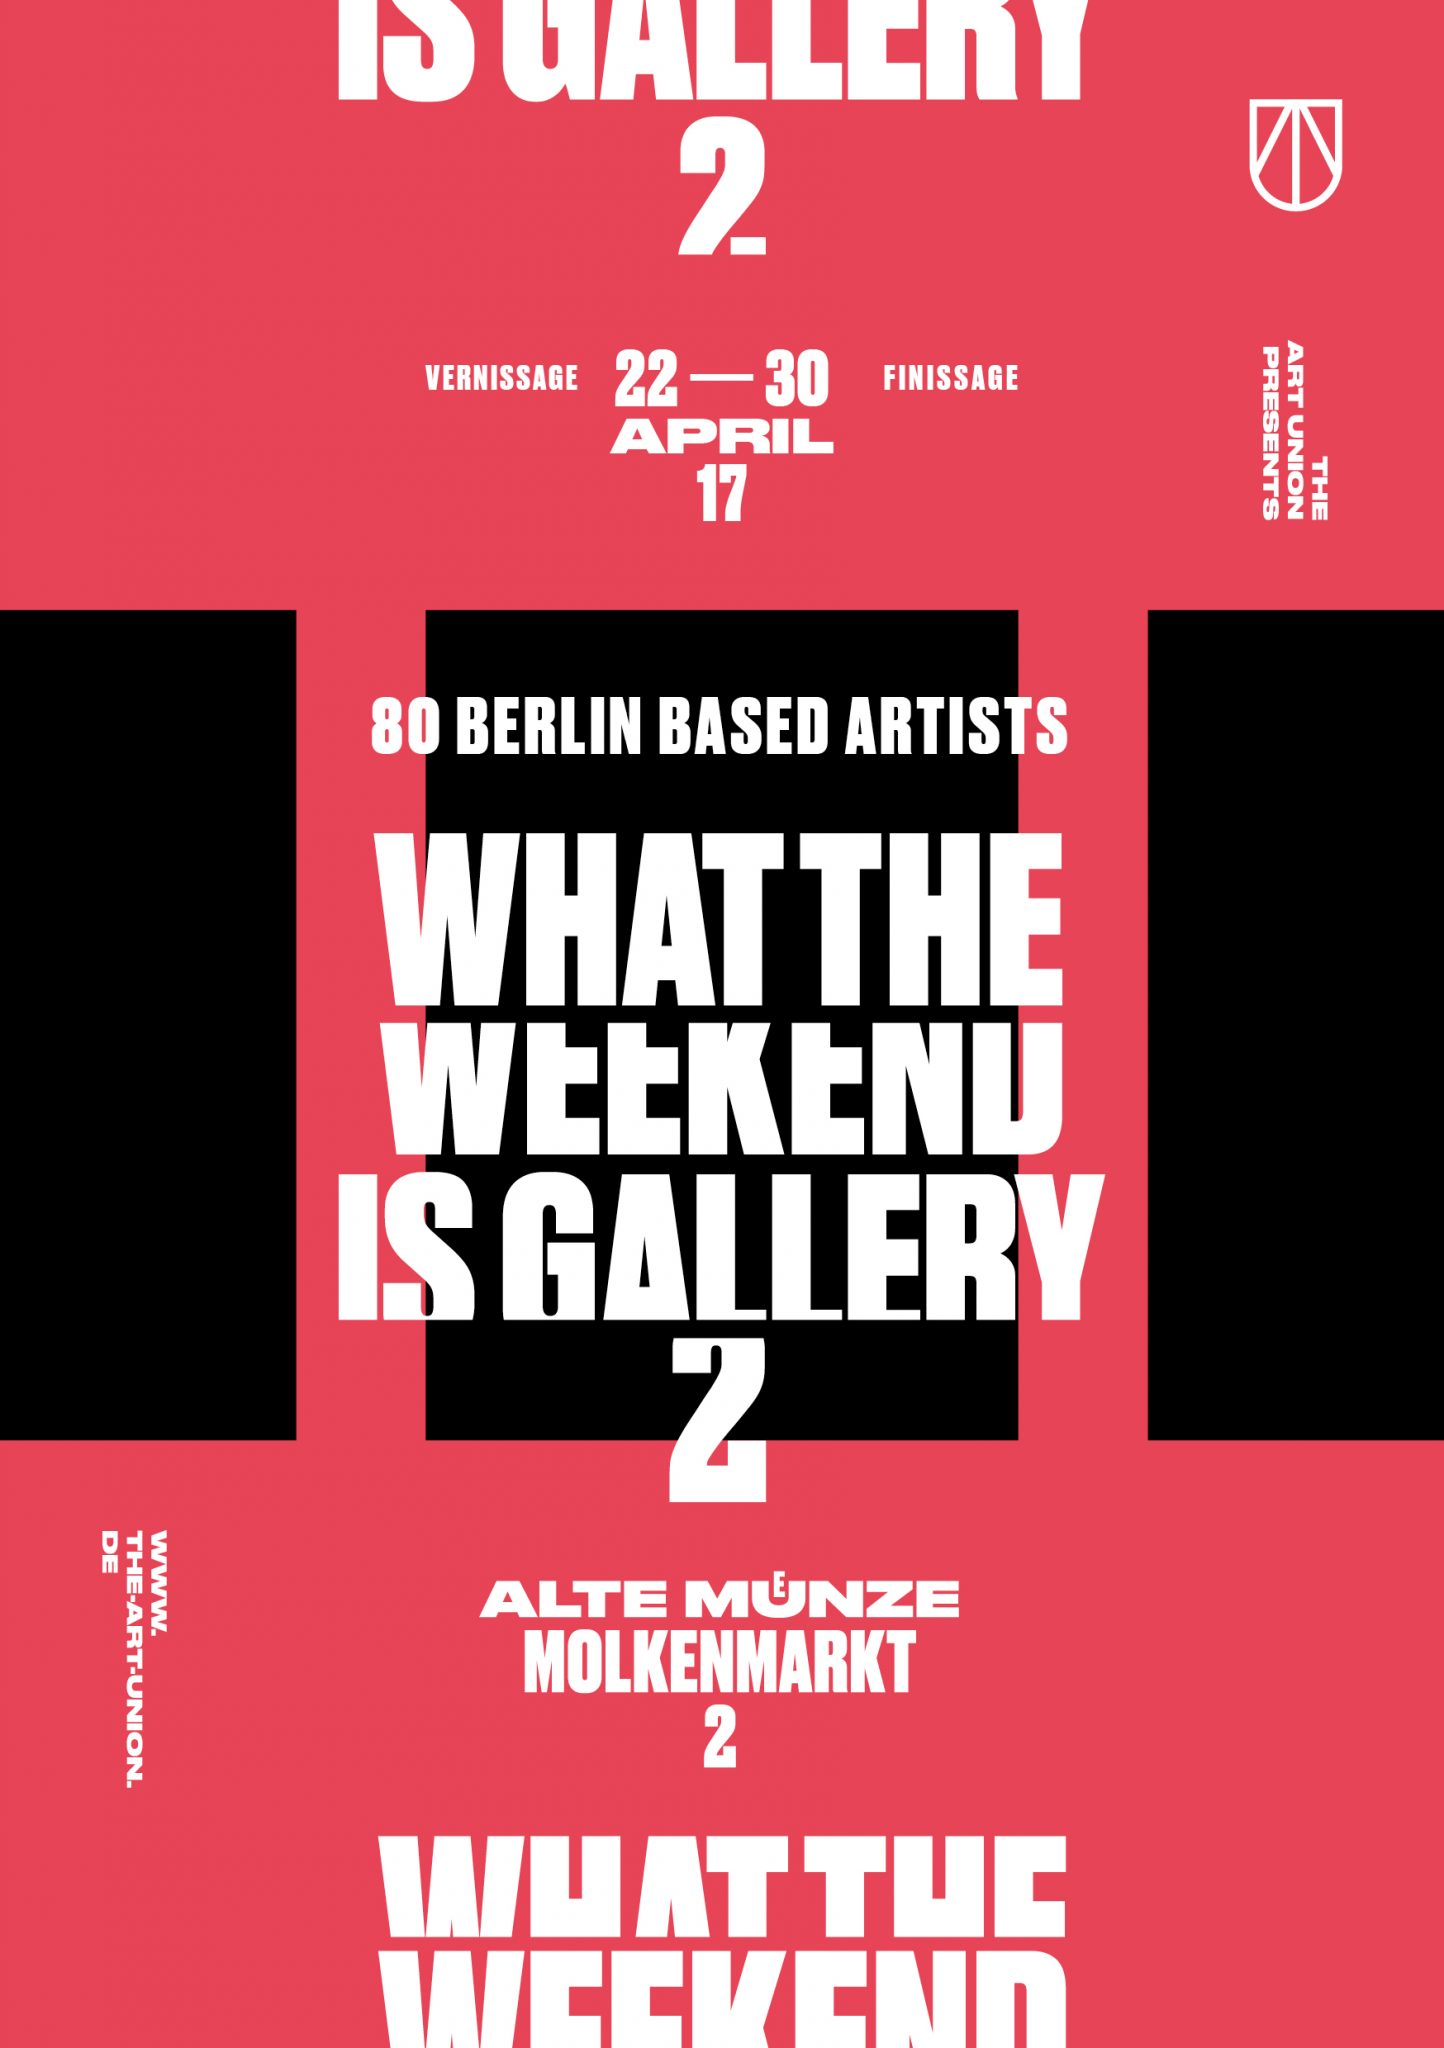 THE ART UNION What The Weekend Is Gallery 2 – a group exhibition featuring artworks by 80 Berlin based artists